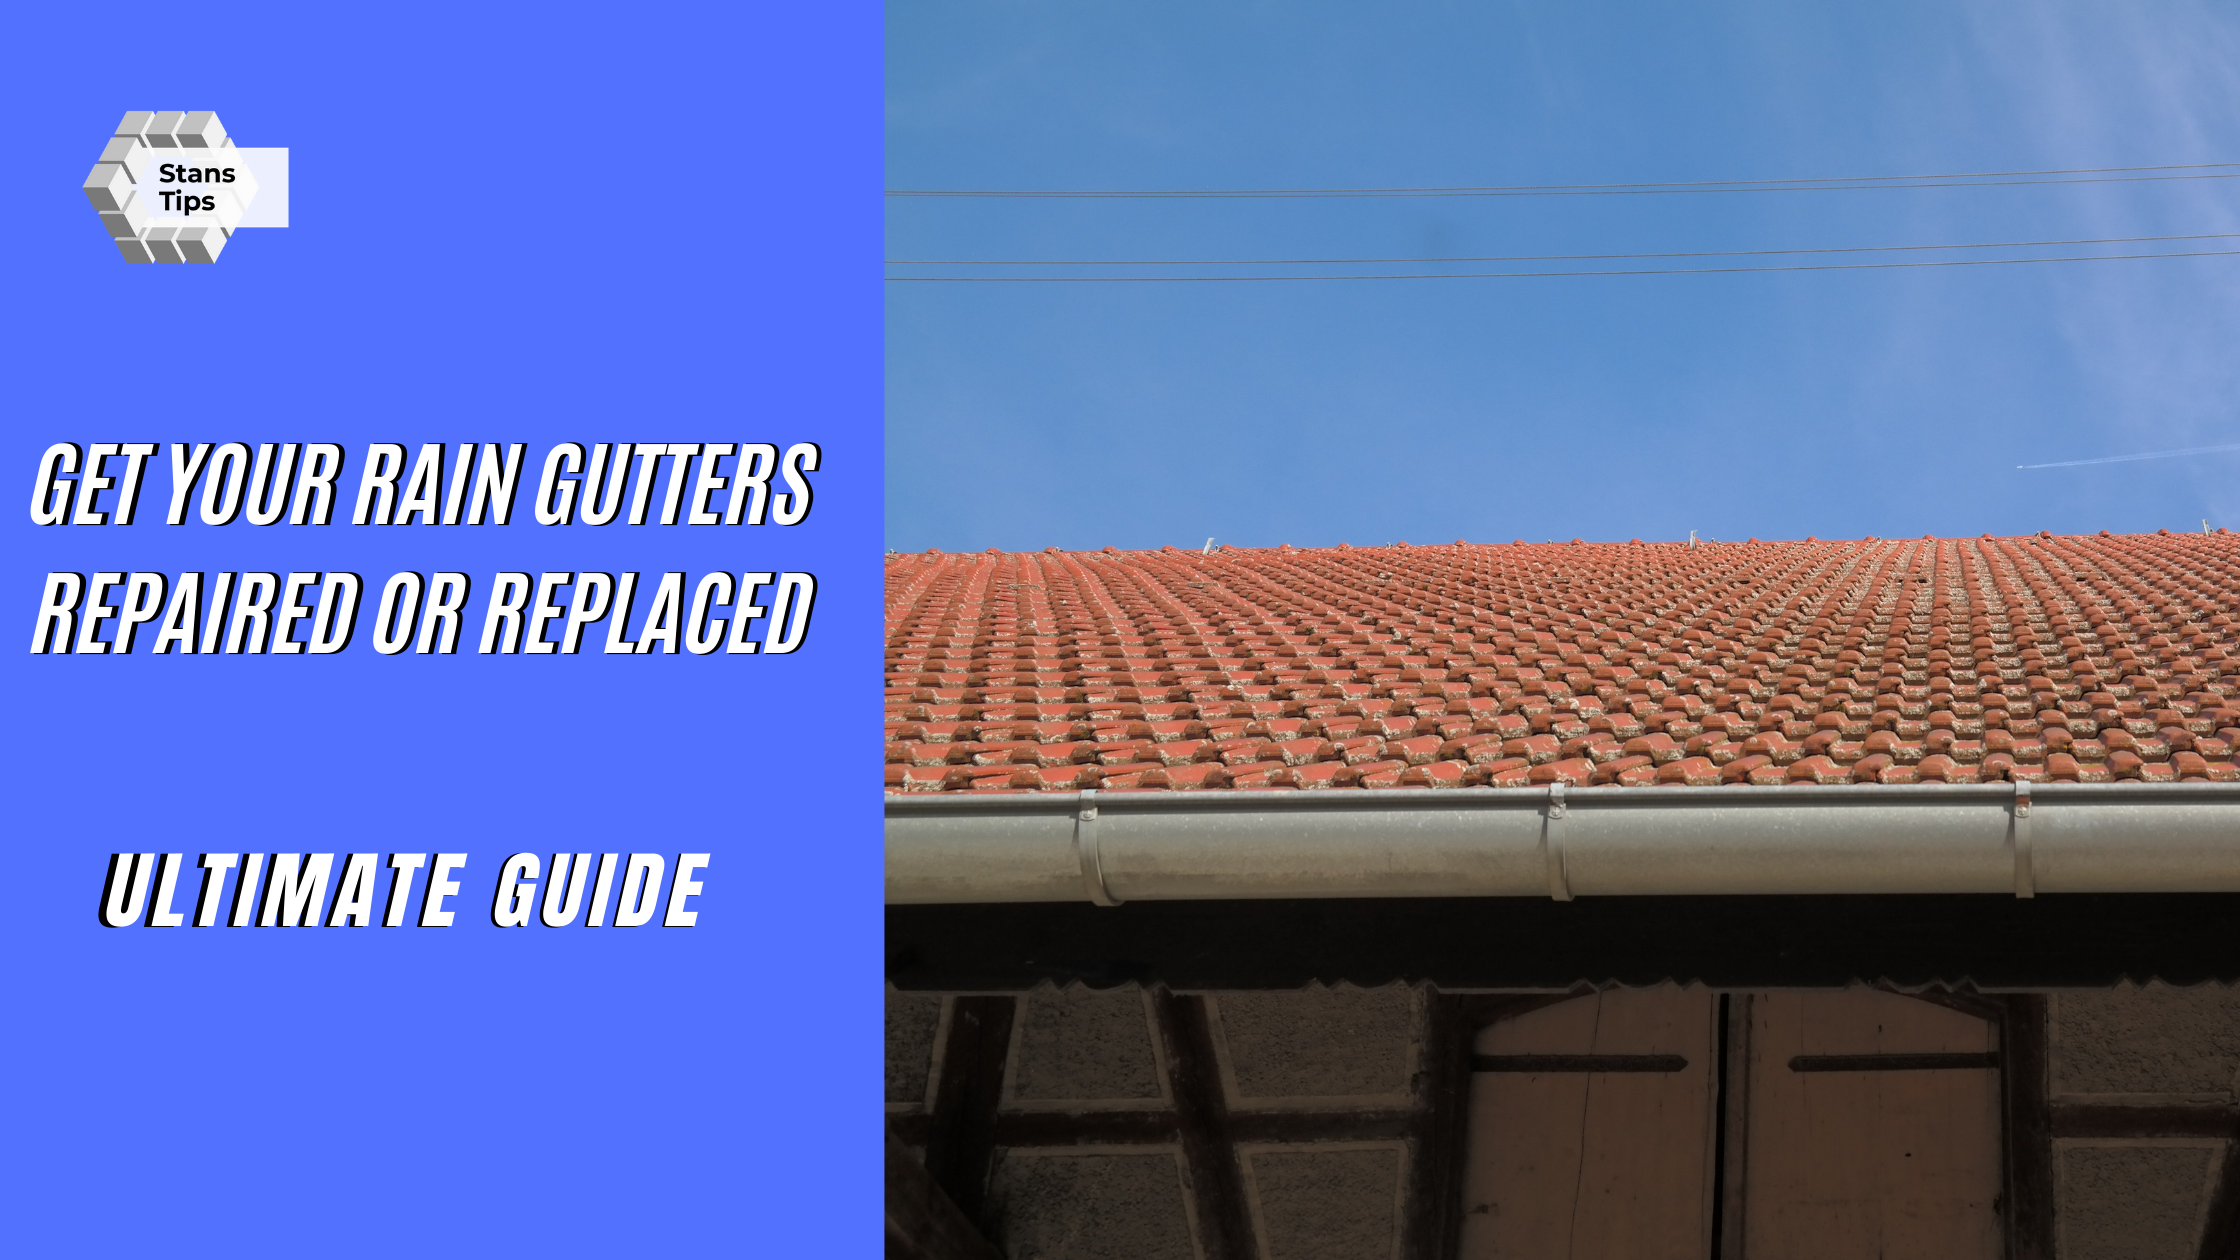 Rain gutters repaired or replaced